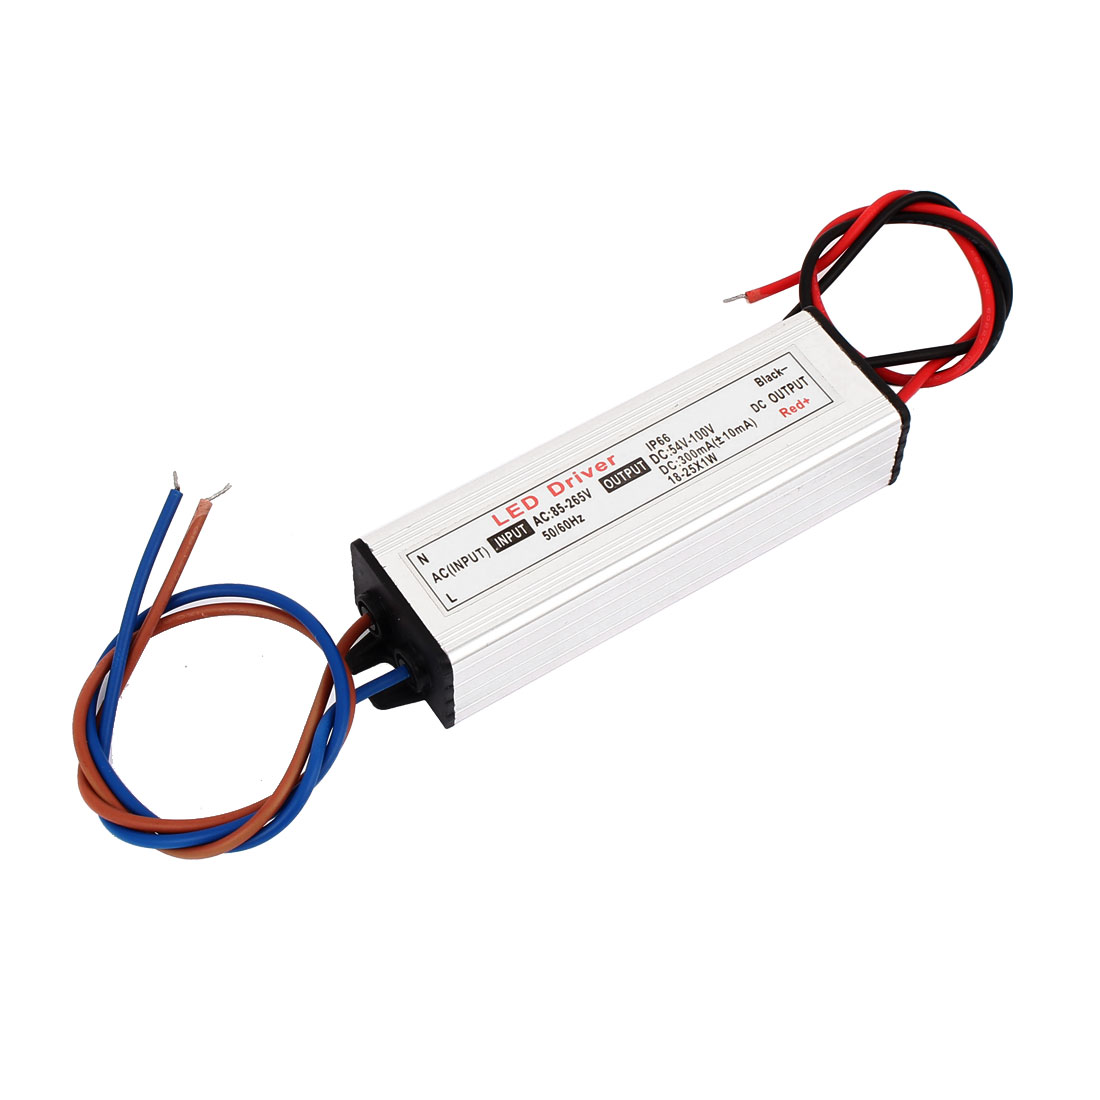 AC85-265V to DC54-100V 18-25W Transformer Waterproof LED Driver Power Supply